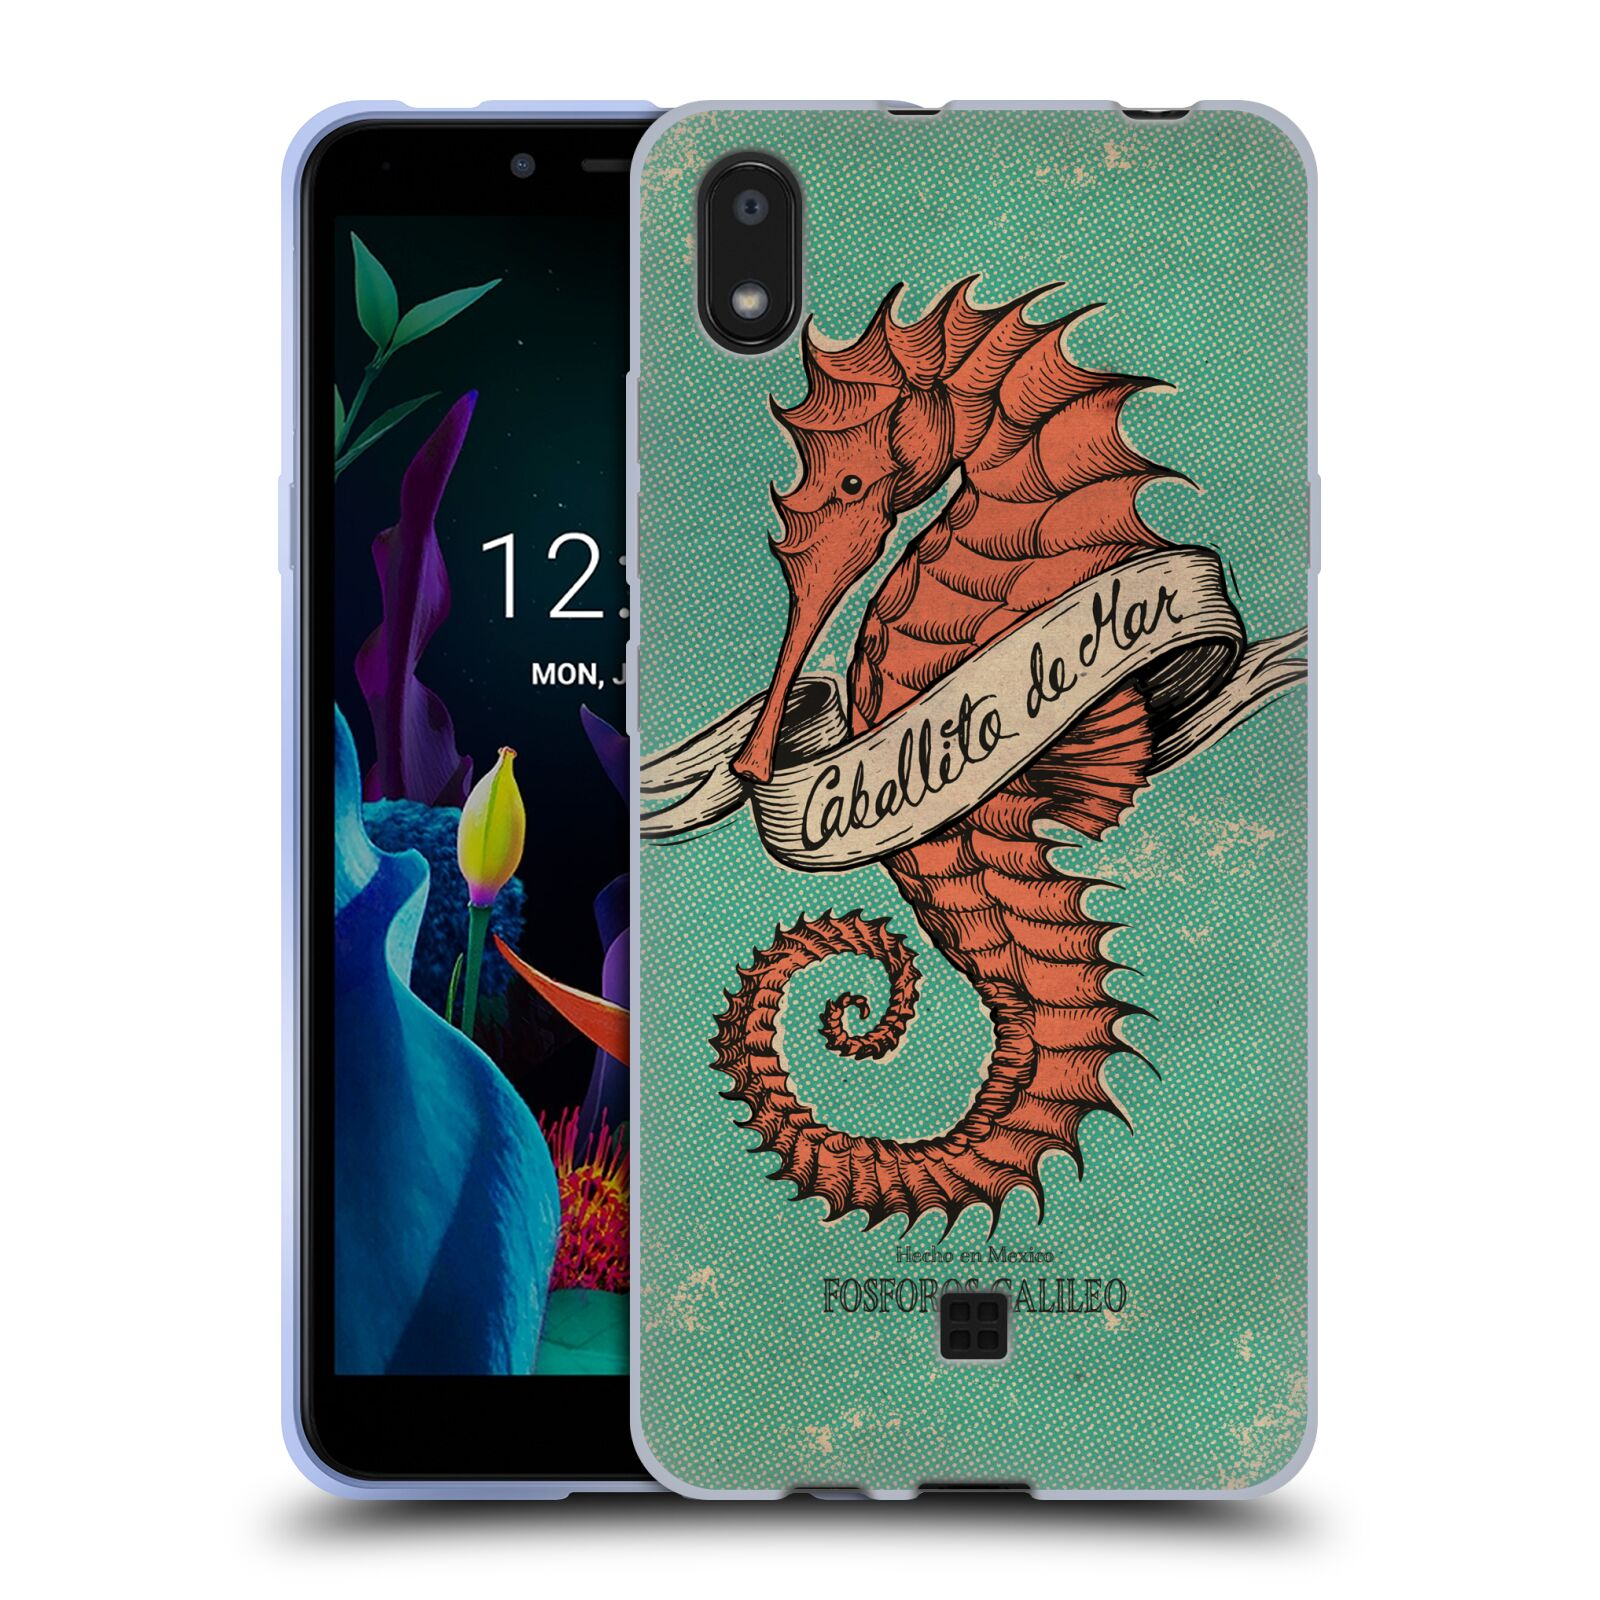 Official Fosforos Galileo Diseños Caballito De Mar Gel Case for LG K20 (2019)